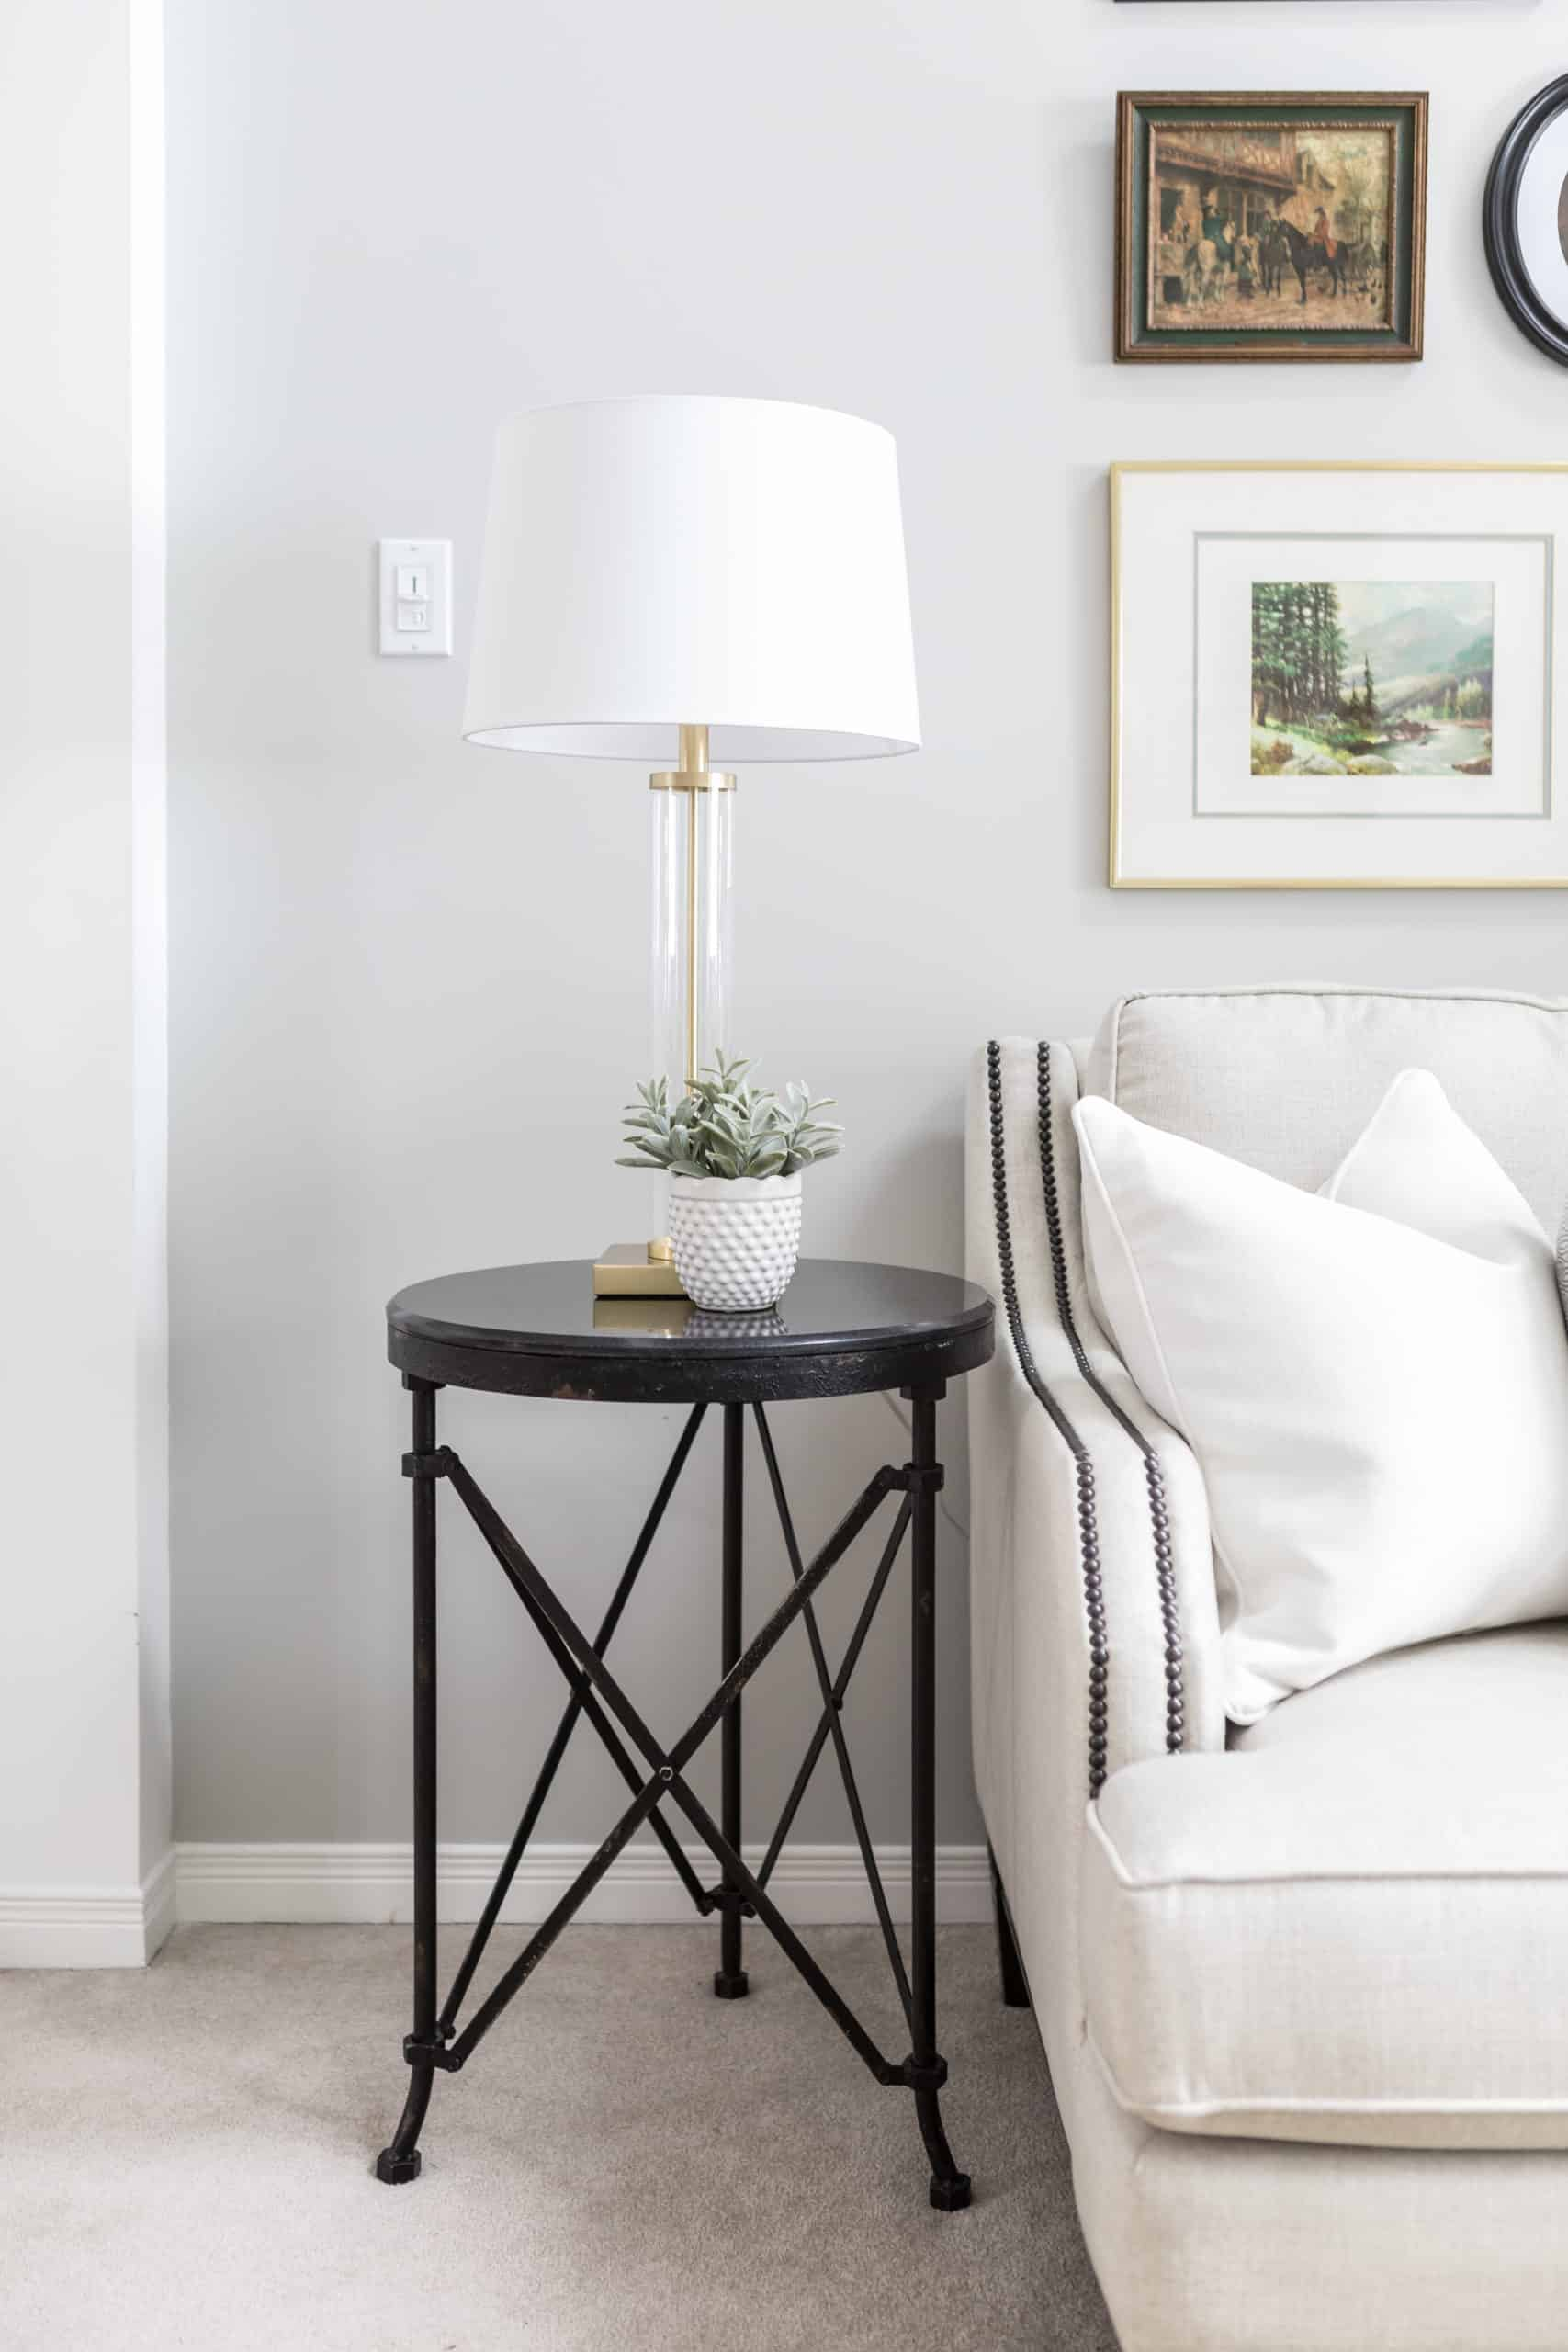 White lamp on an end table